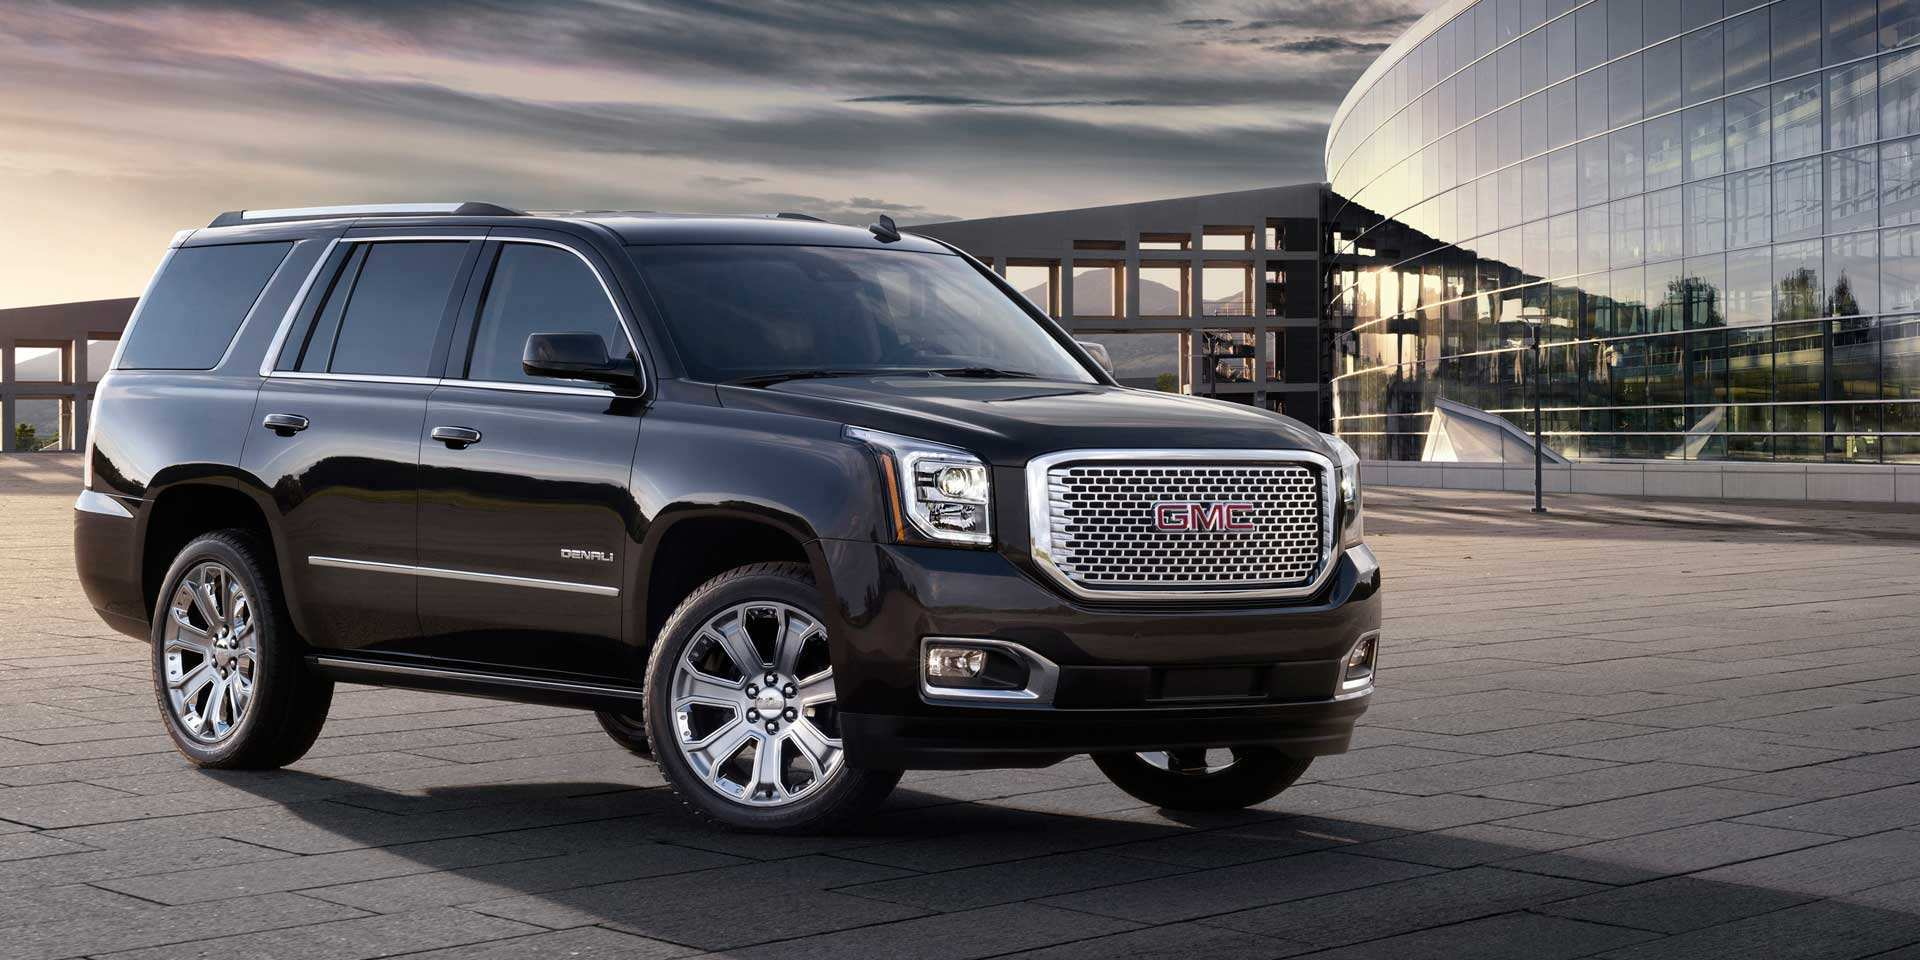 68 All New 2020 Gmc Yukon Detroit Auto Show Rumors for 2020 Gmc Yukon Detroit Auto Show